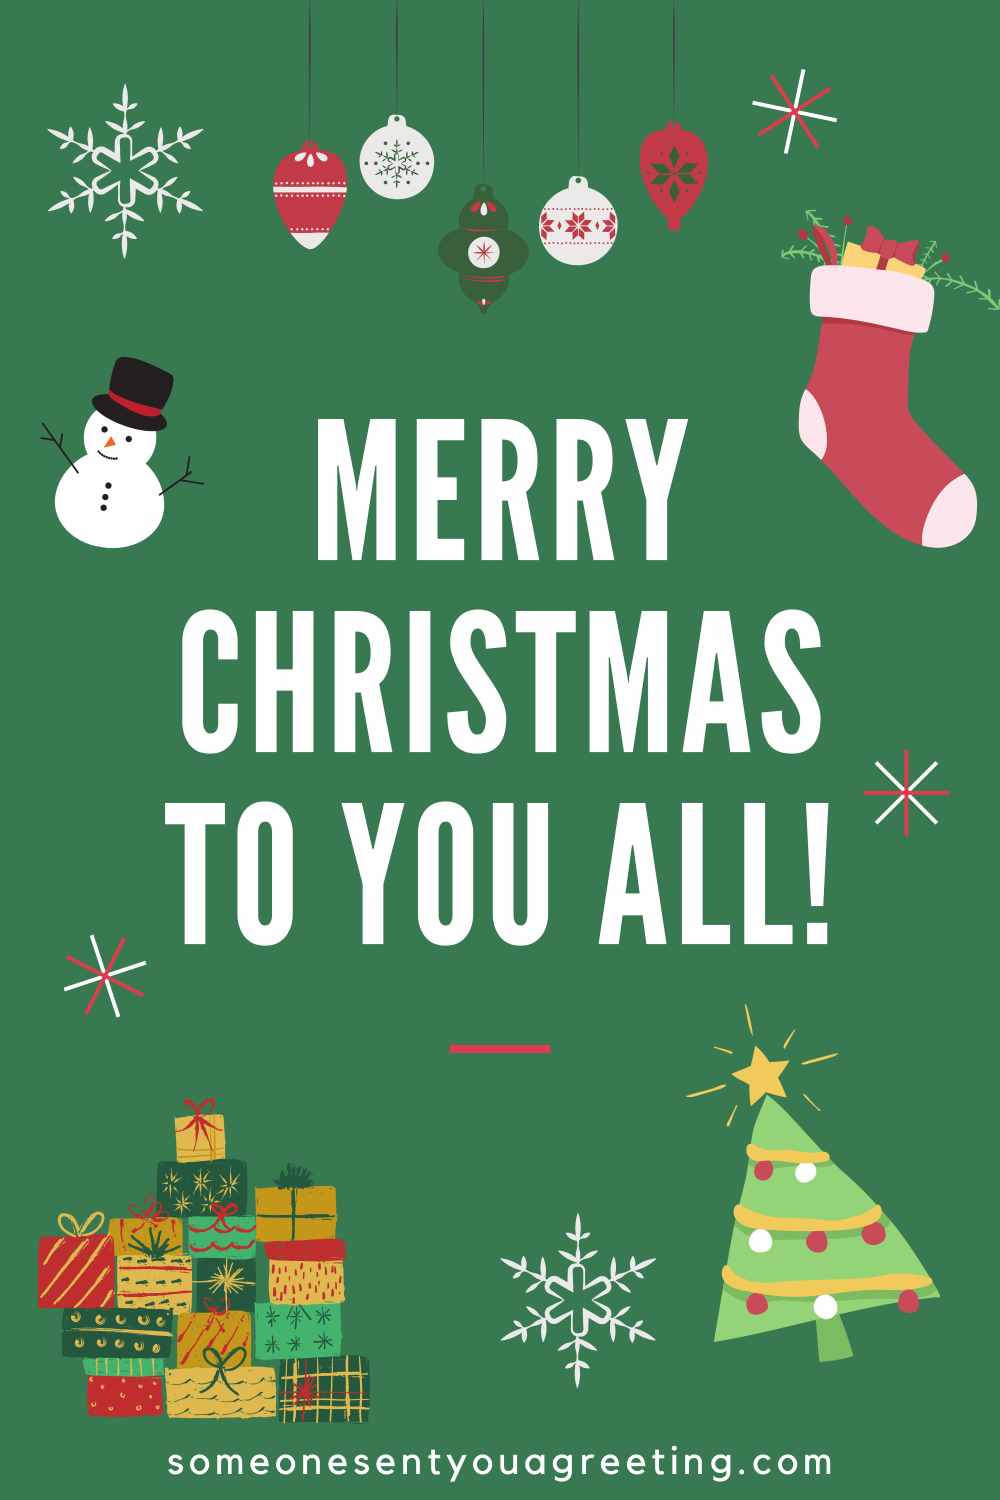 Merry Christmas to all in family